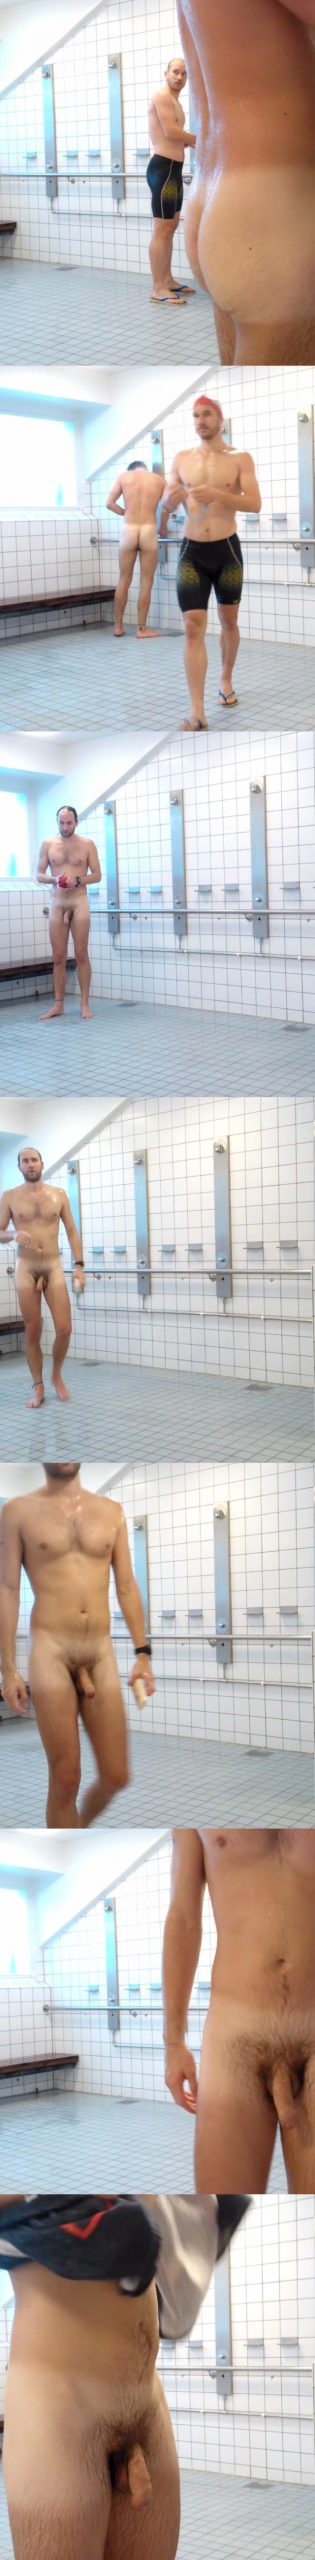 swimmer with big cock caught naked in shower